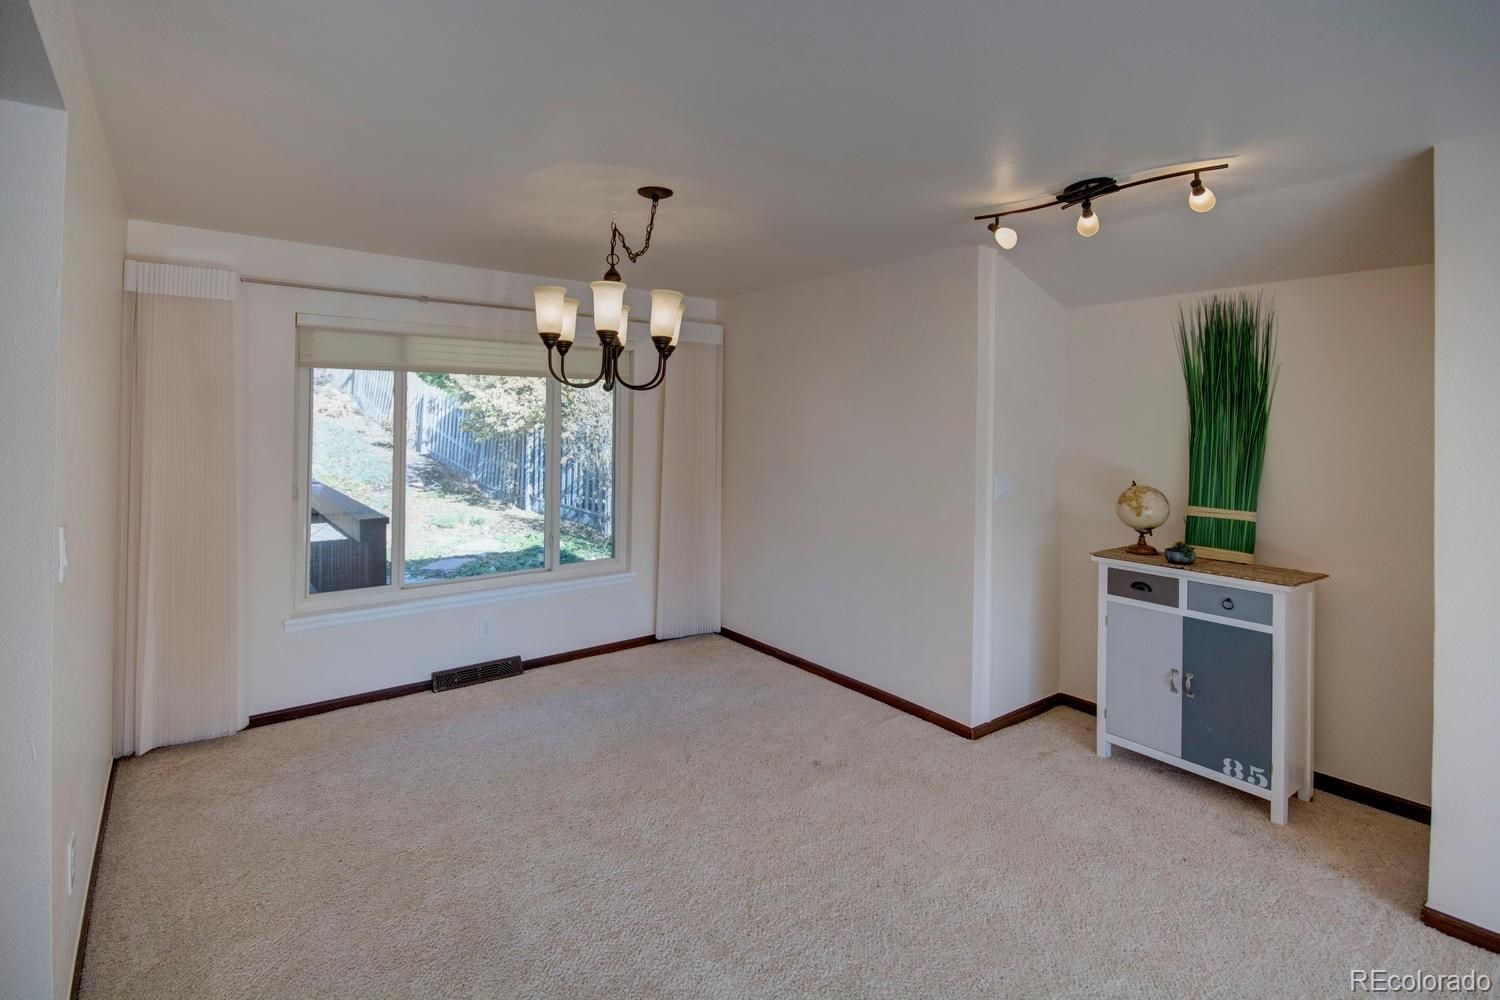 MLS# 5118504 - 6 - 4765 W 101st Place, Westminster, CO 80031